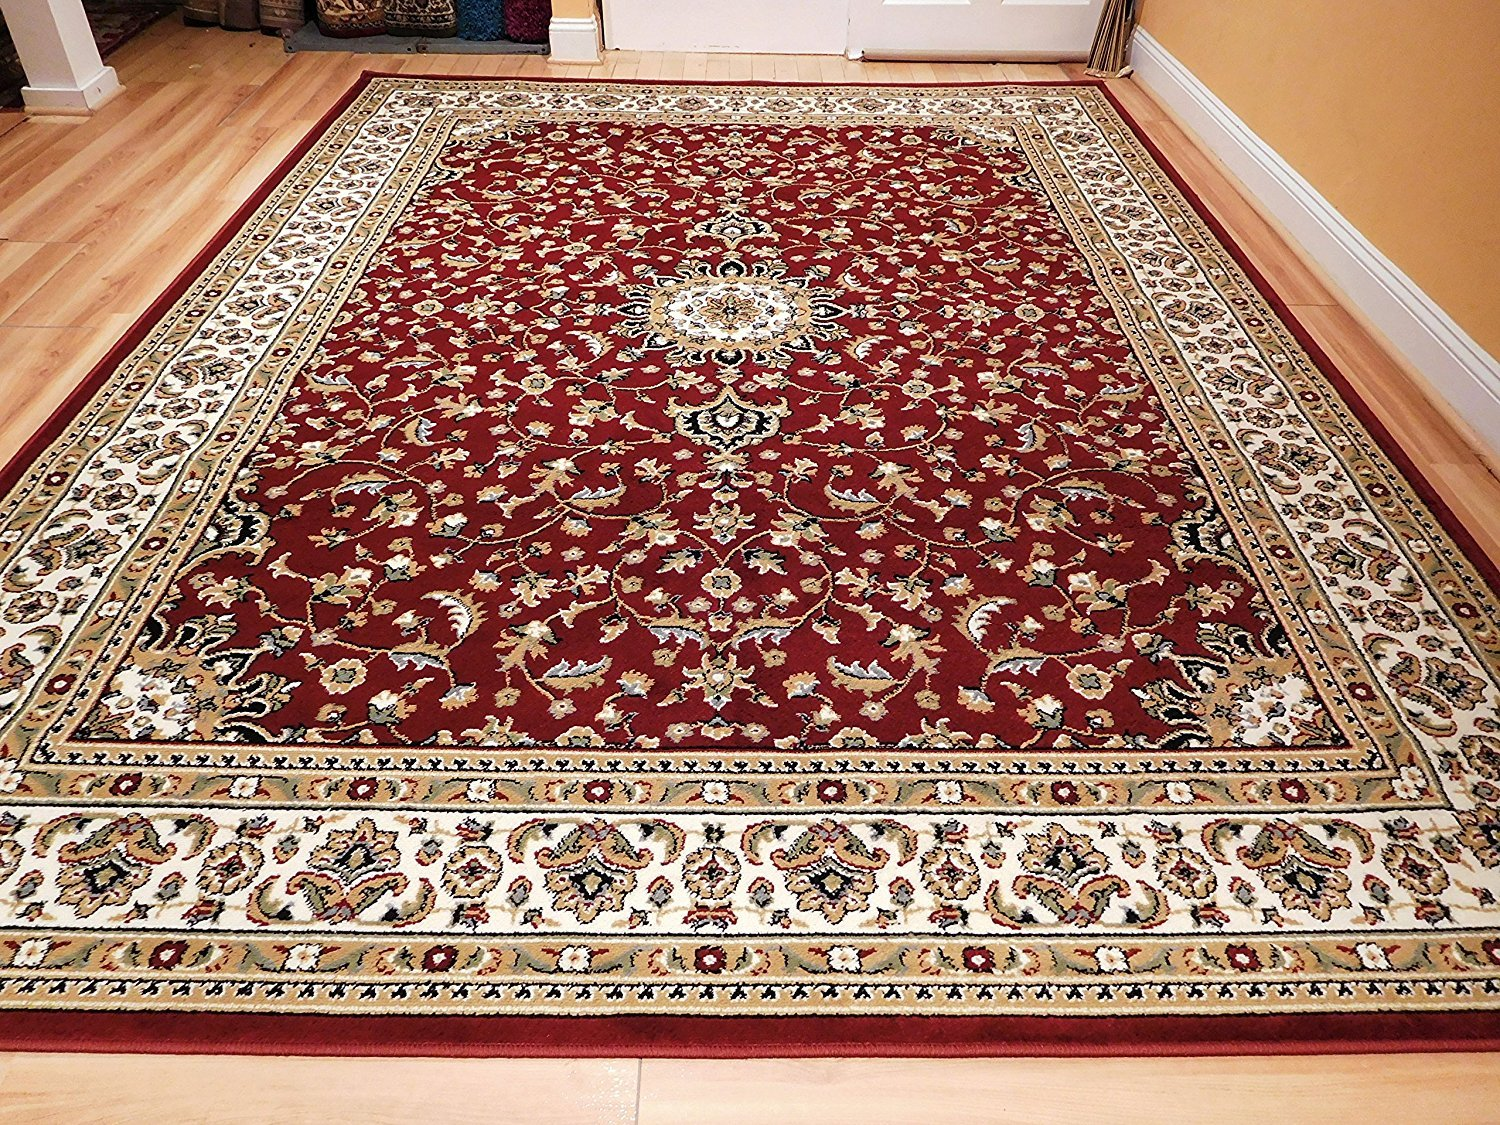 Amazon.com: Large 5x8 Red Cream Beige Black Isfahan Area Rug Oriental  Carpet 6x8 Rug Living Room Rugs: Kitchen U0026 Dining